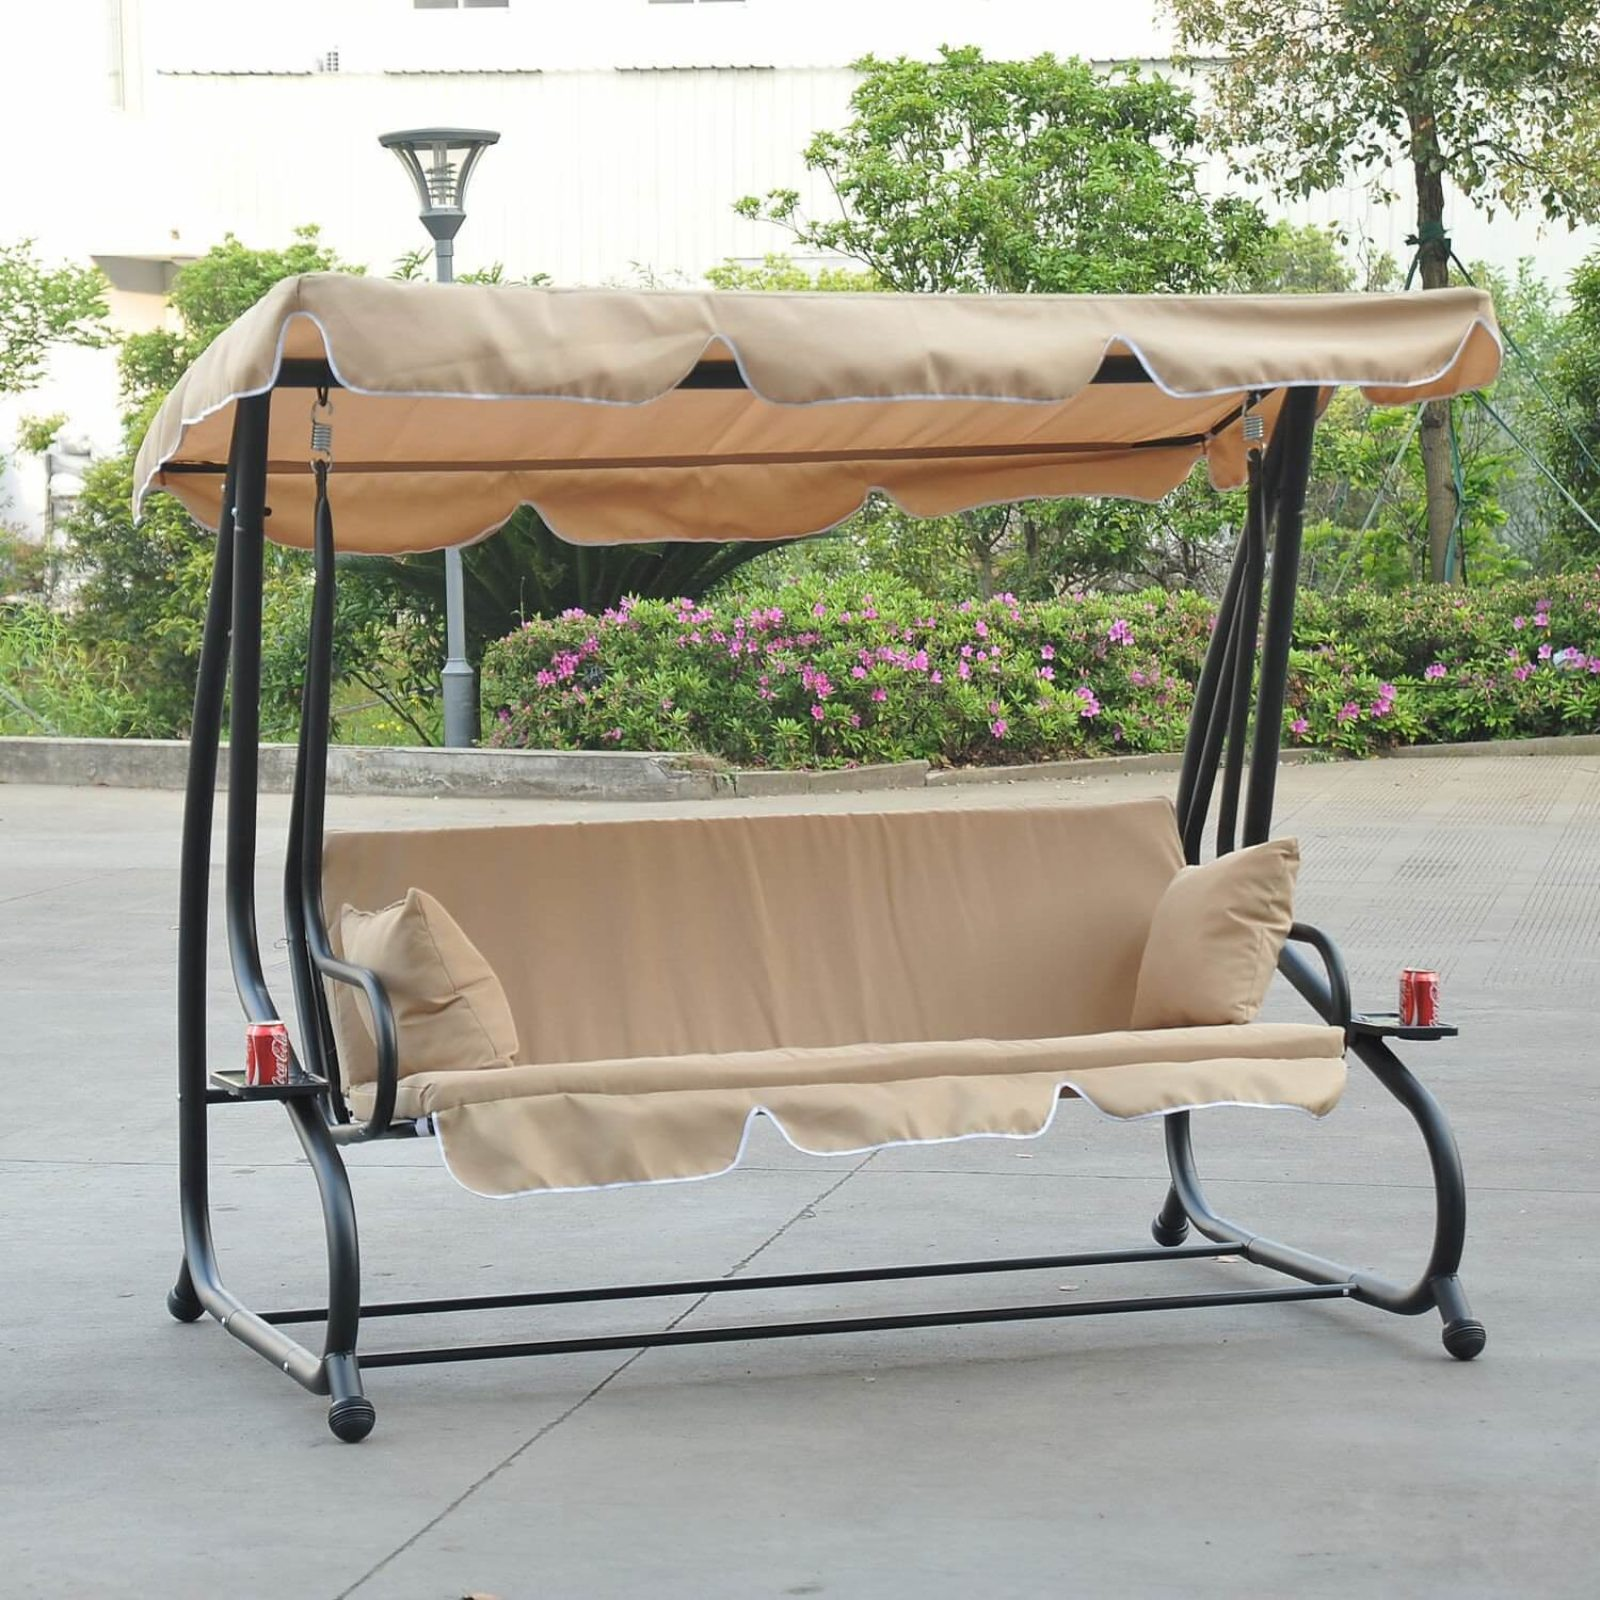 pl com caravan swing outdoors sun porch gliders at patio outdoor bronze hammered furniture international shop iron swings lowes ray